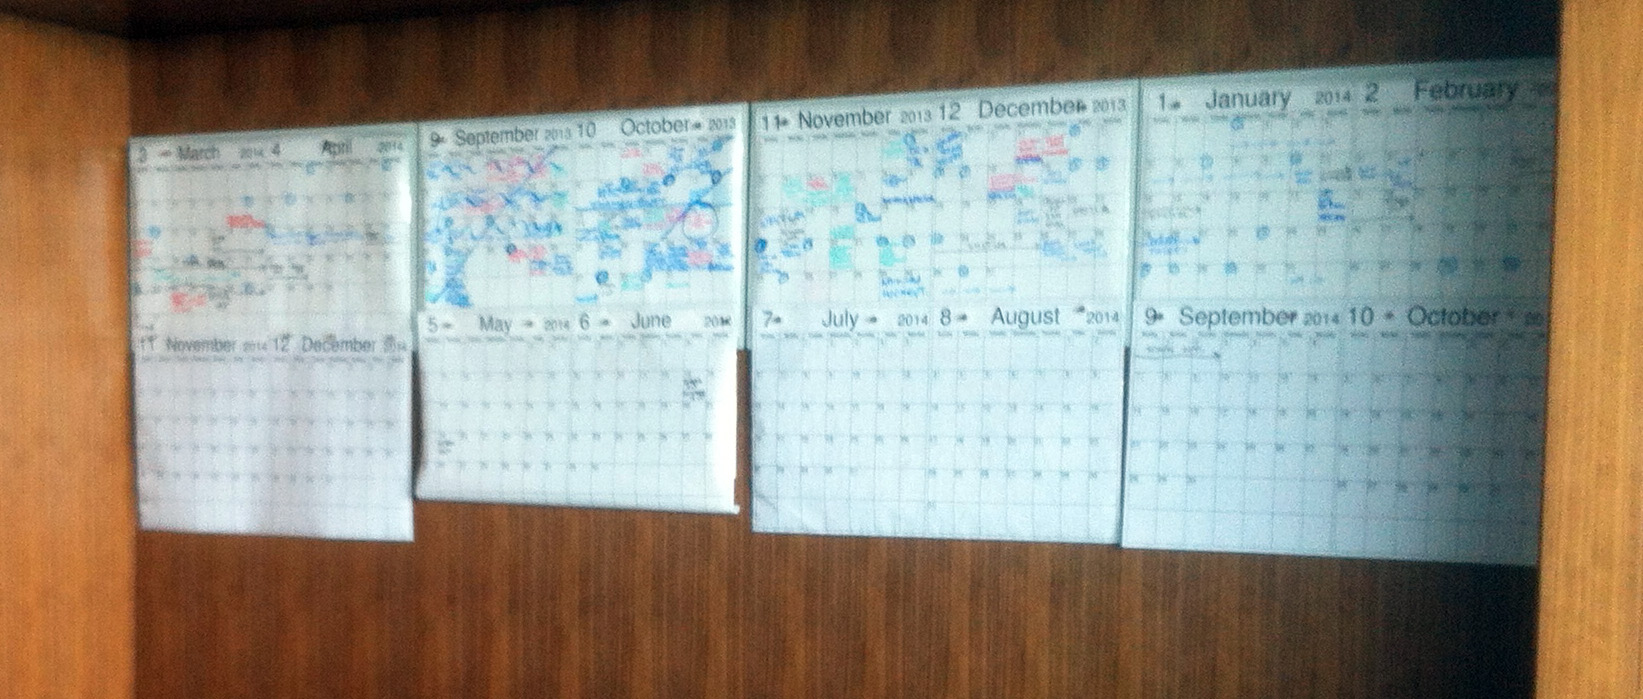 Our client had been using dry erase calendars that were tediously updated in three separate locations.